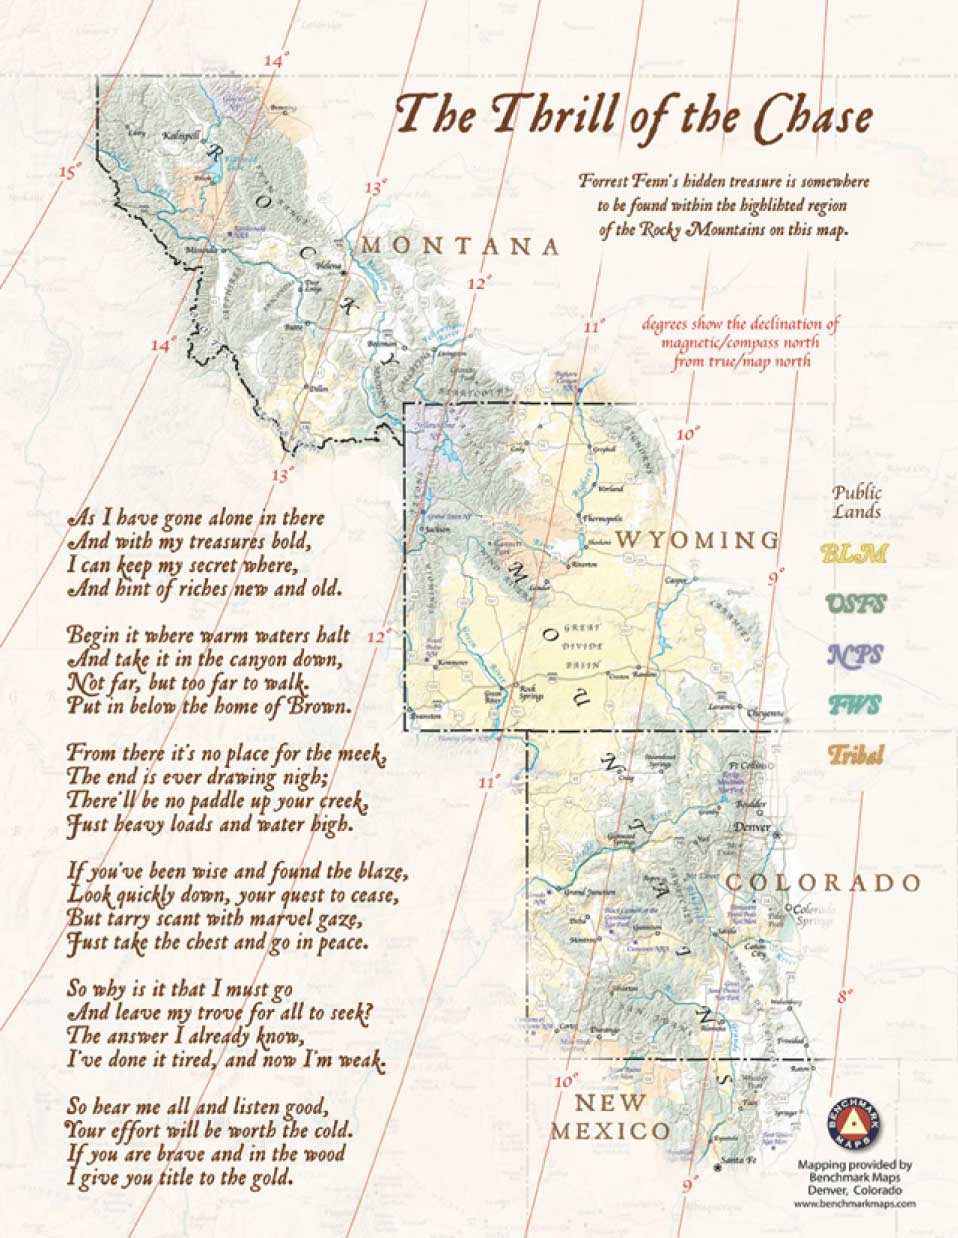 Forrest Fenn's Treasure Poem and Map of the Rocky Mountains